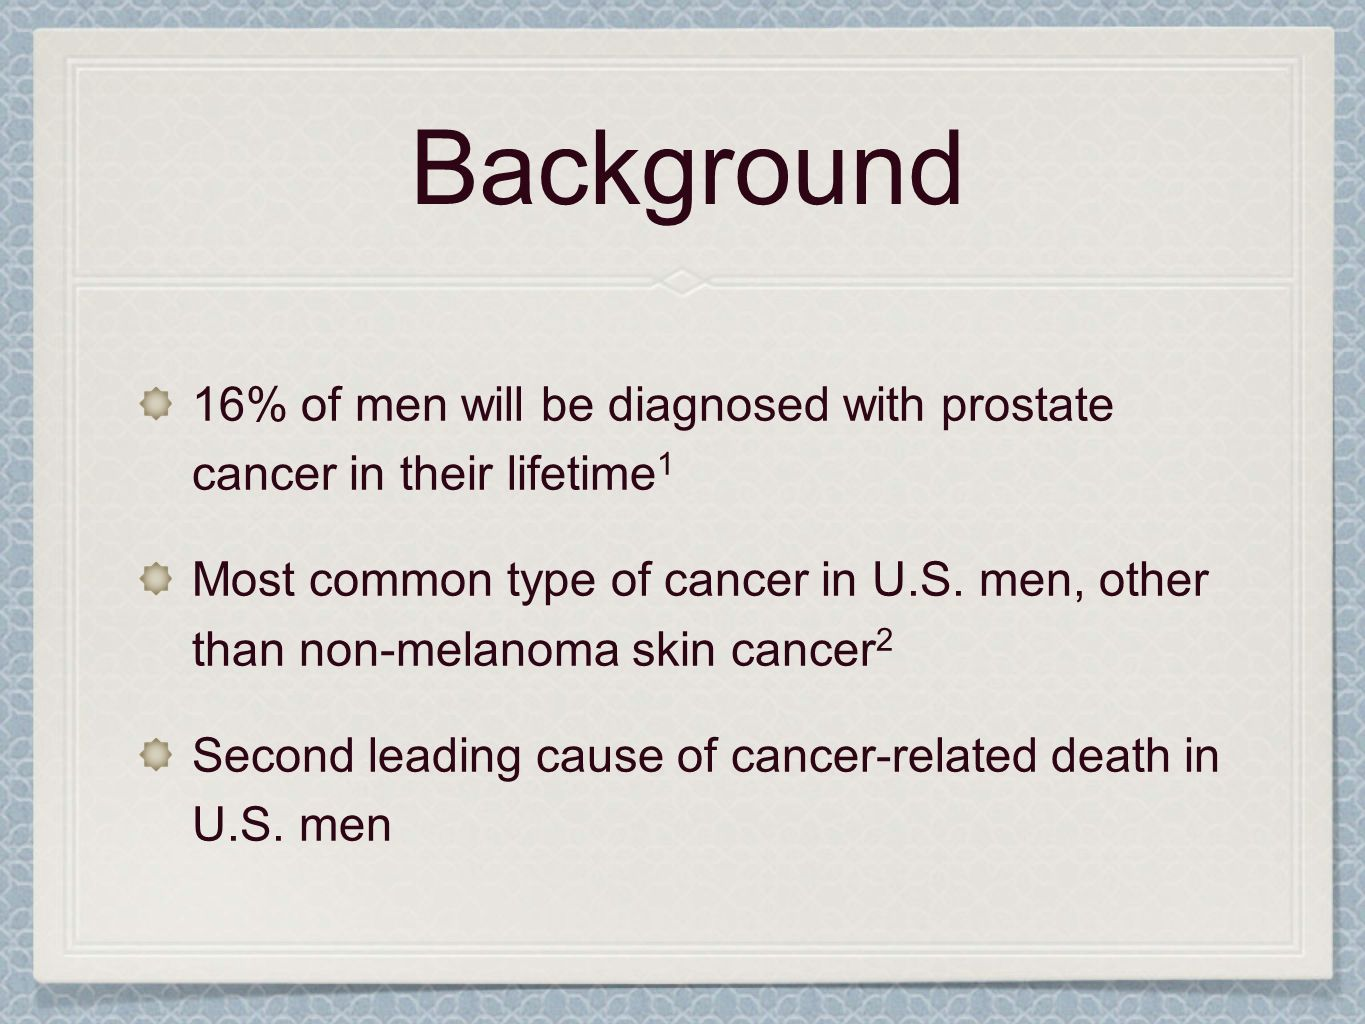 Background16% of men will be diagnosed with prostate cancer in their lifetime1.